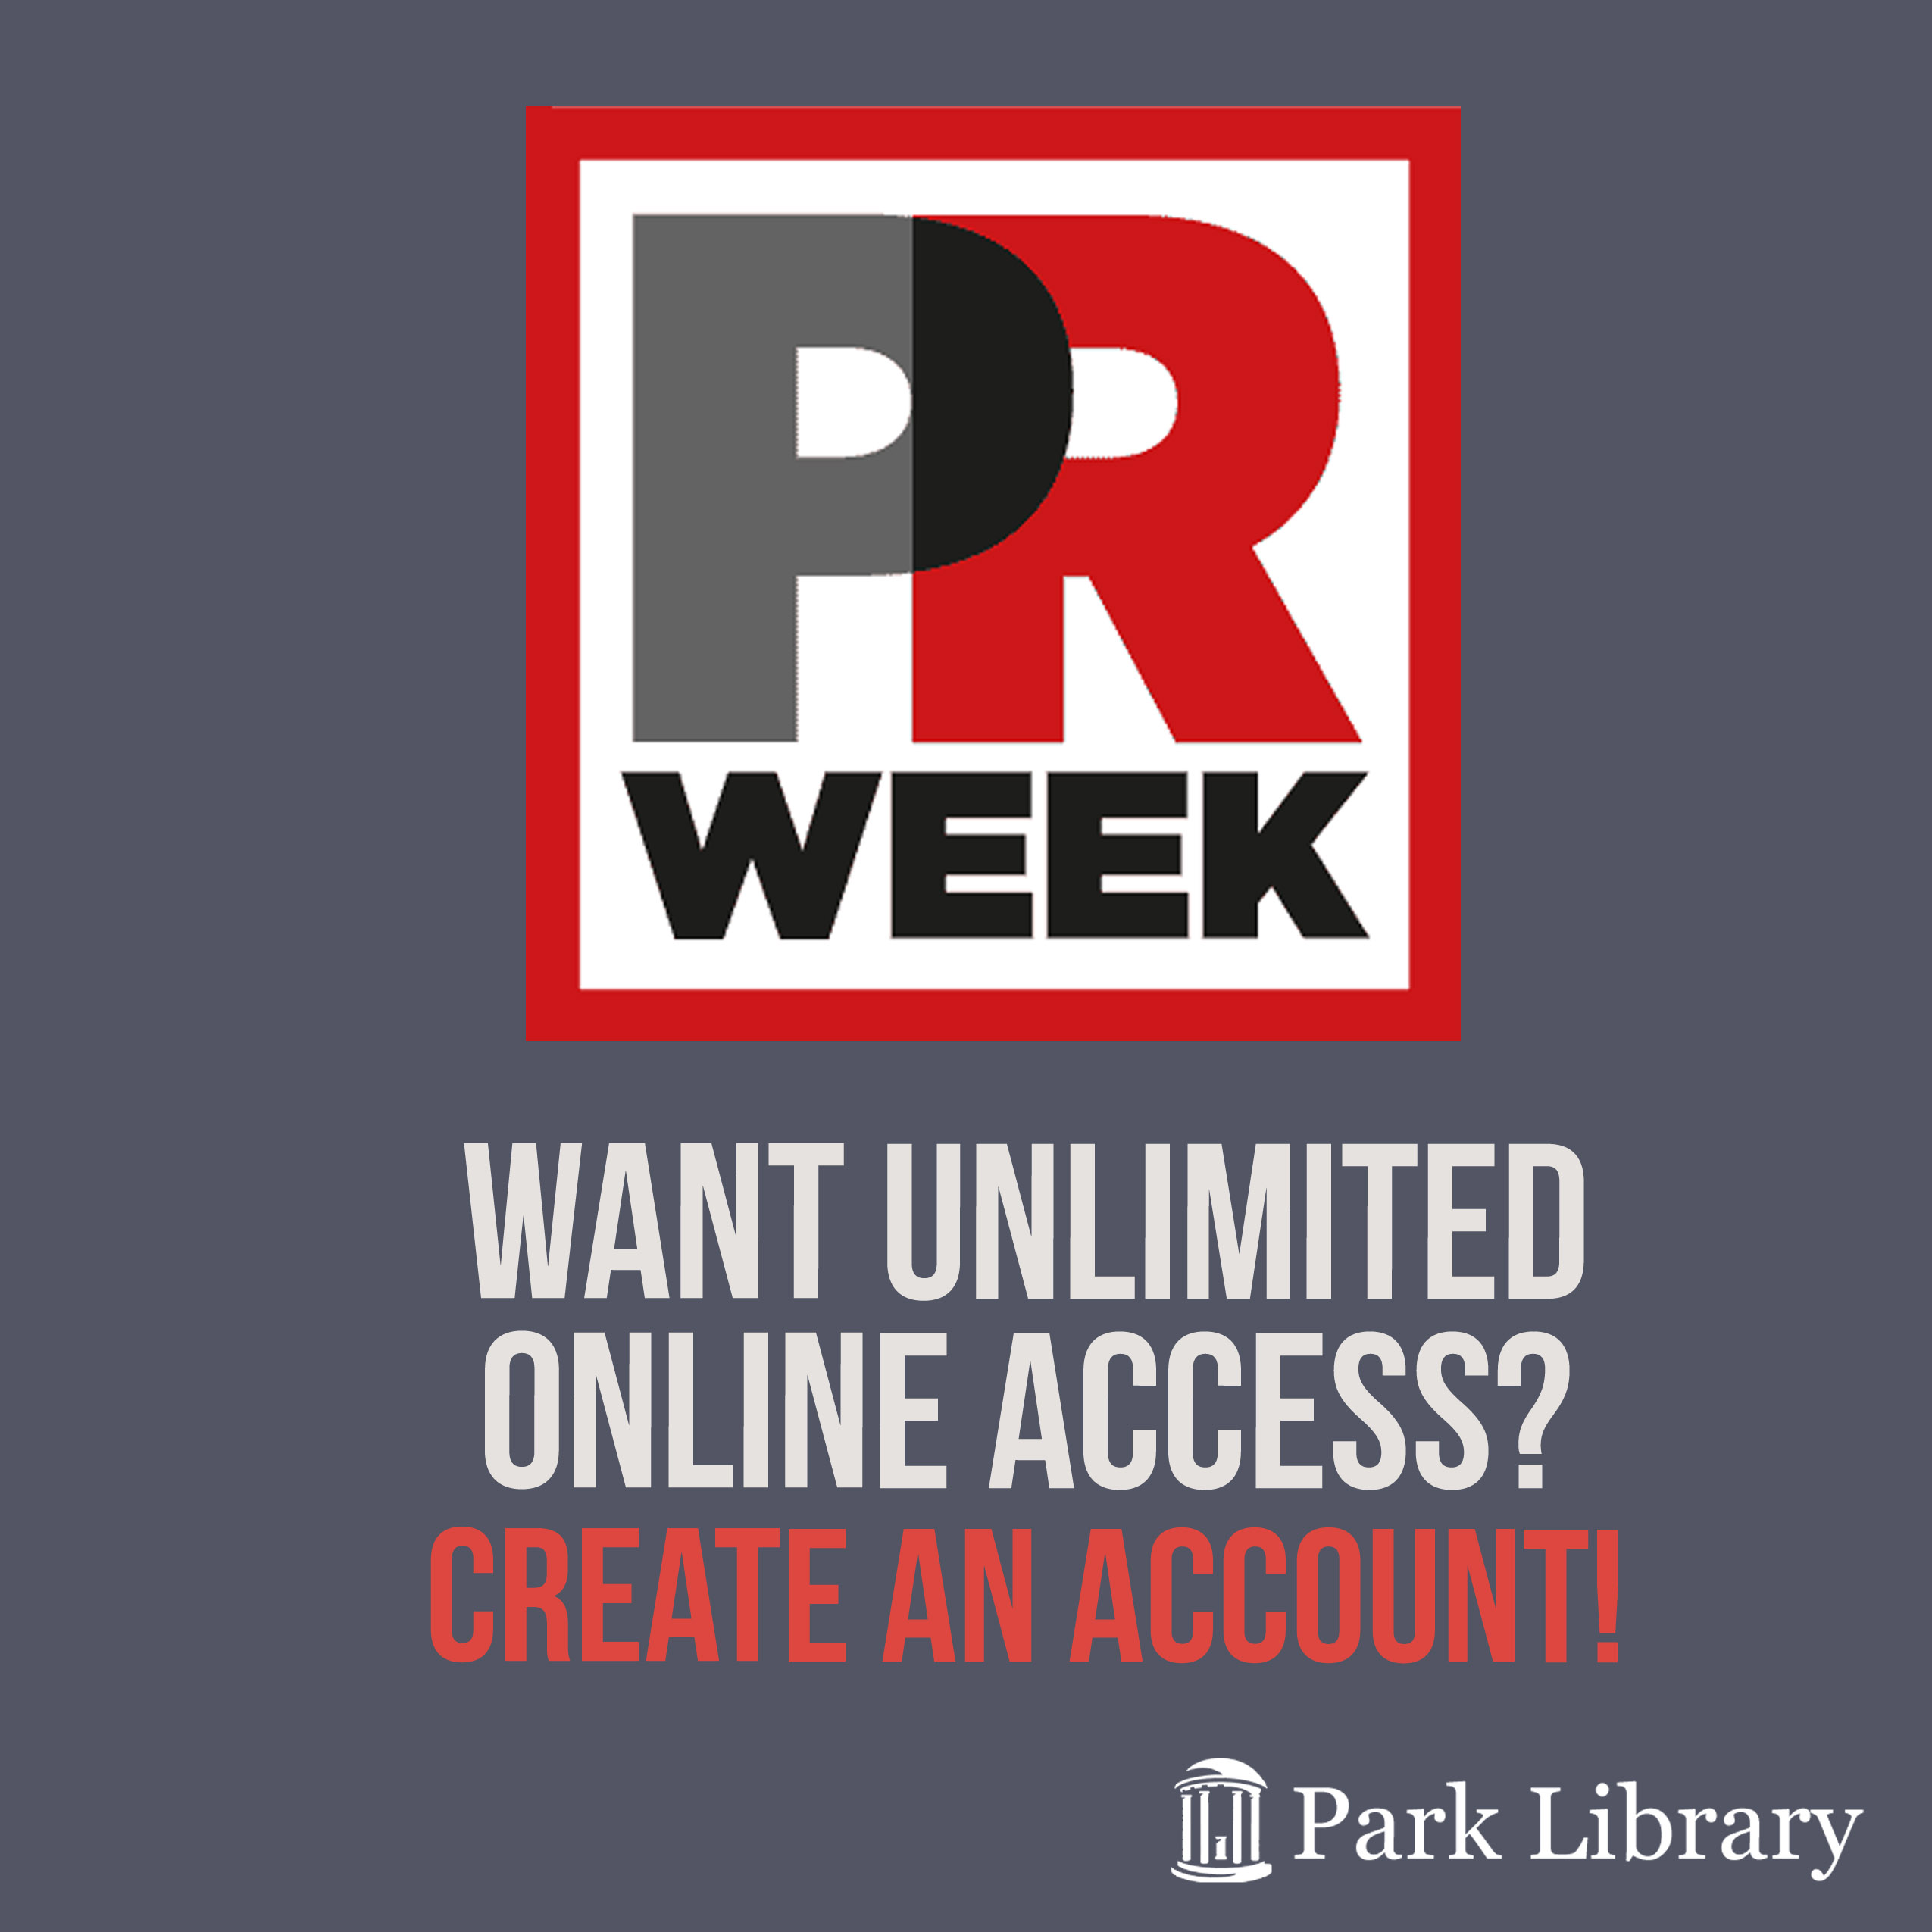 PRWeek graphic